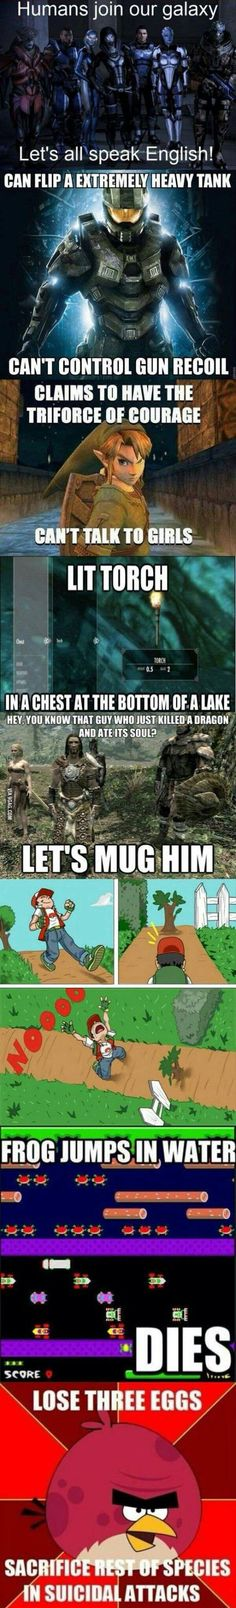 That's video game logic for you...the Pokemon one is the best :D